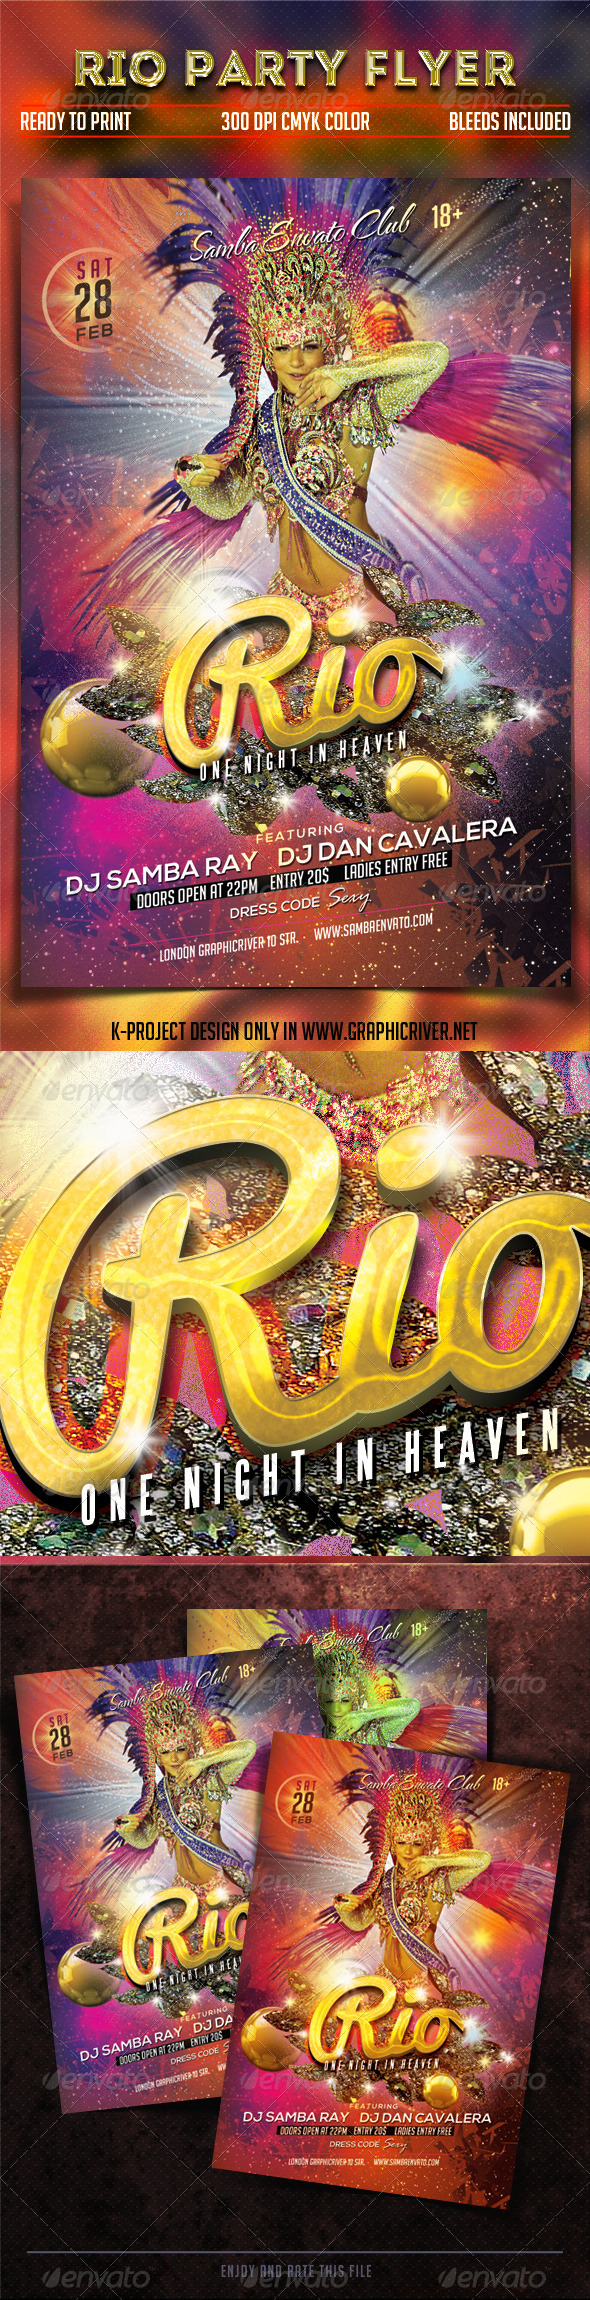 Rio Party Flyer - Clubs & Parties Events